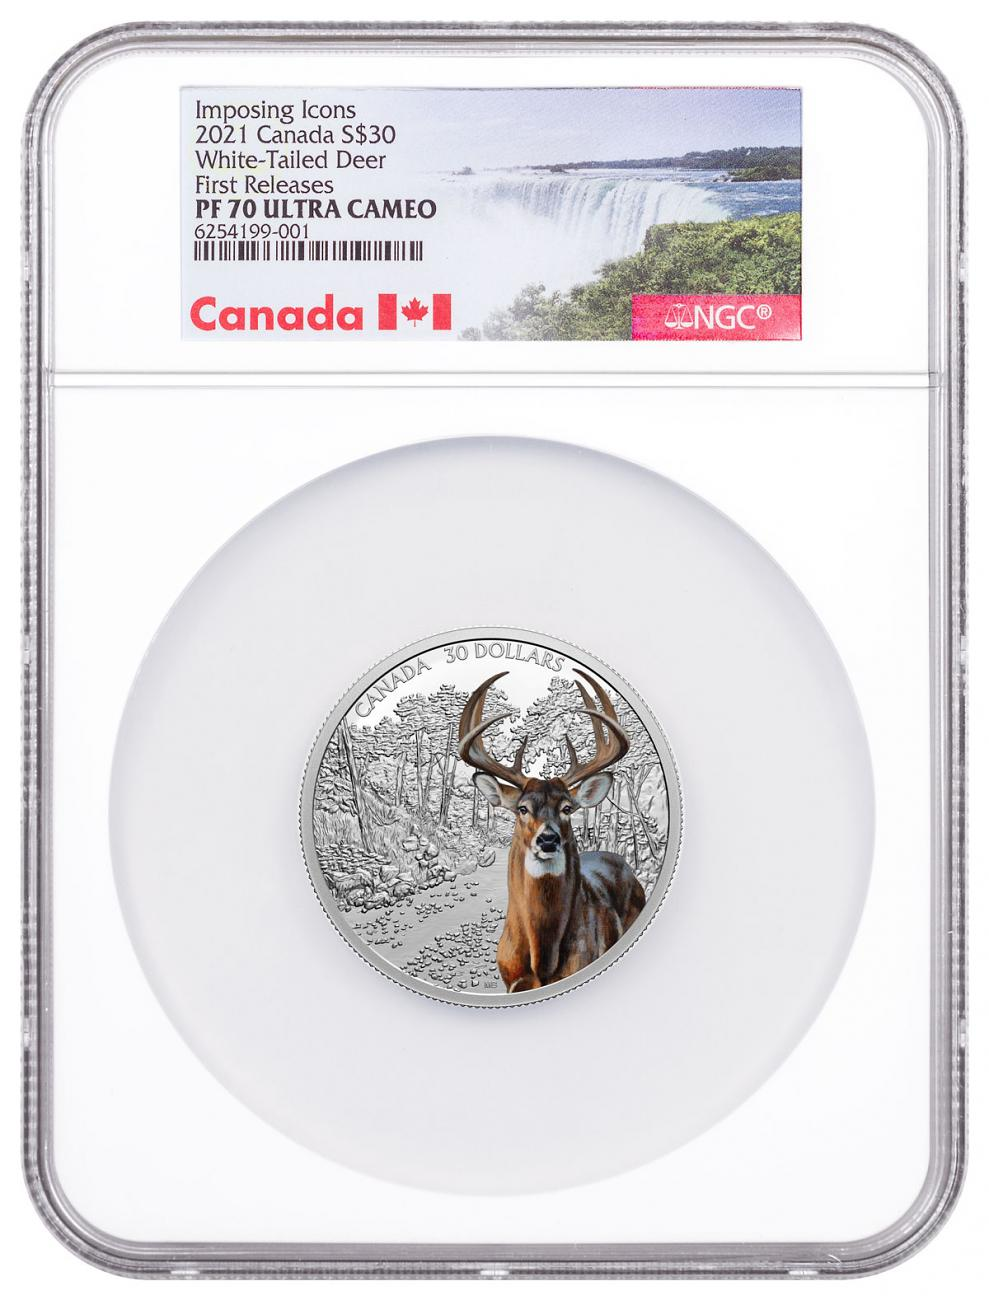 2021 Canada Imposing Icons - White Tailed Deer 2 oz Silver Colorized Proof $30 Coin NGC PF70 UC FR COA Exclusive Canada Label